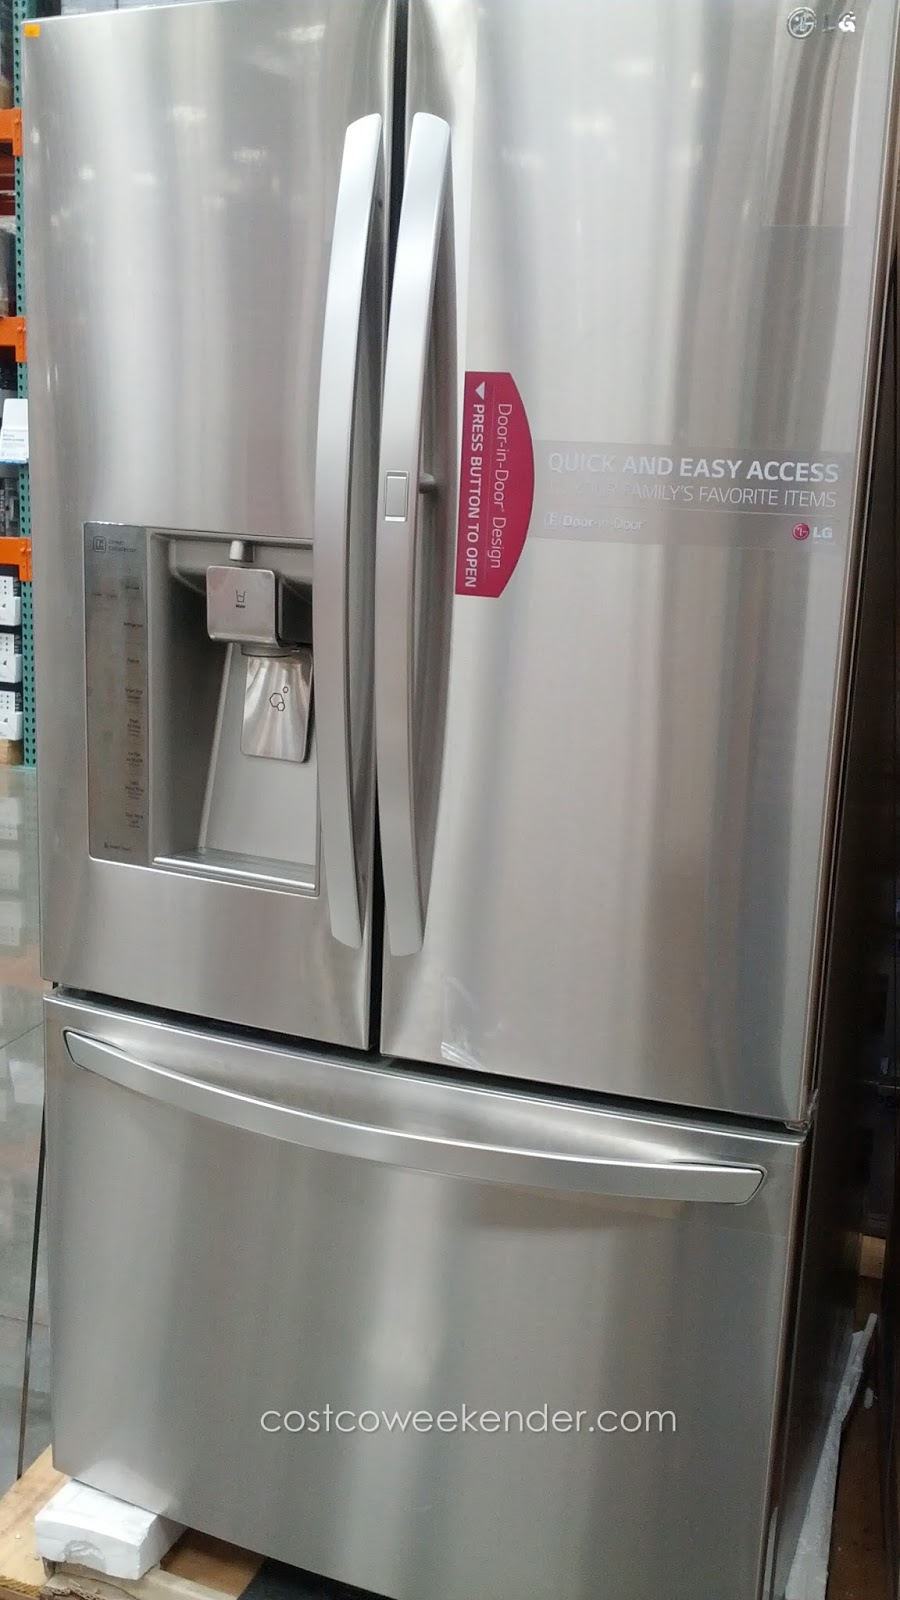 Lg Lfxs30766s French Door Refrigerator Costco Weekender